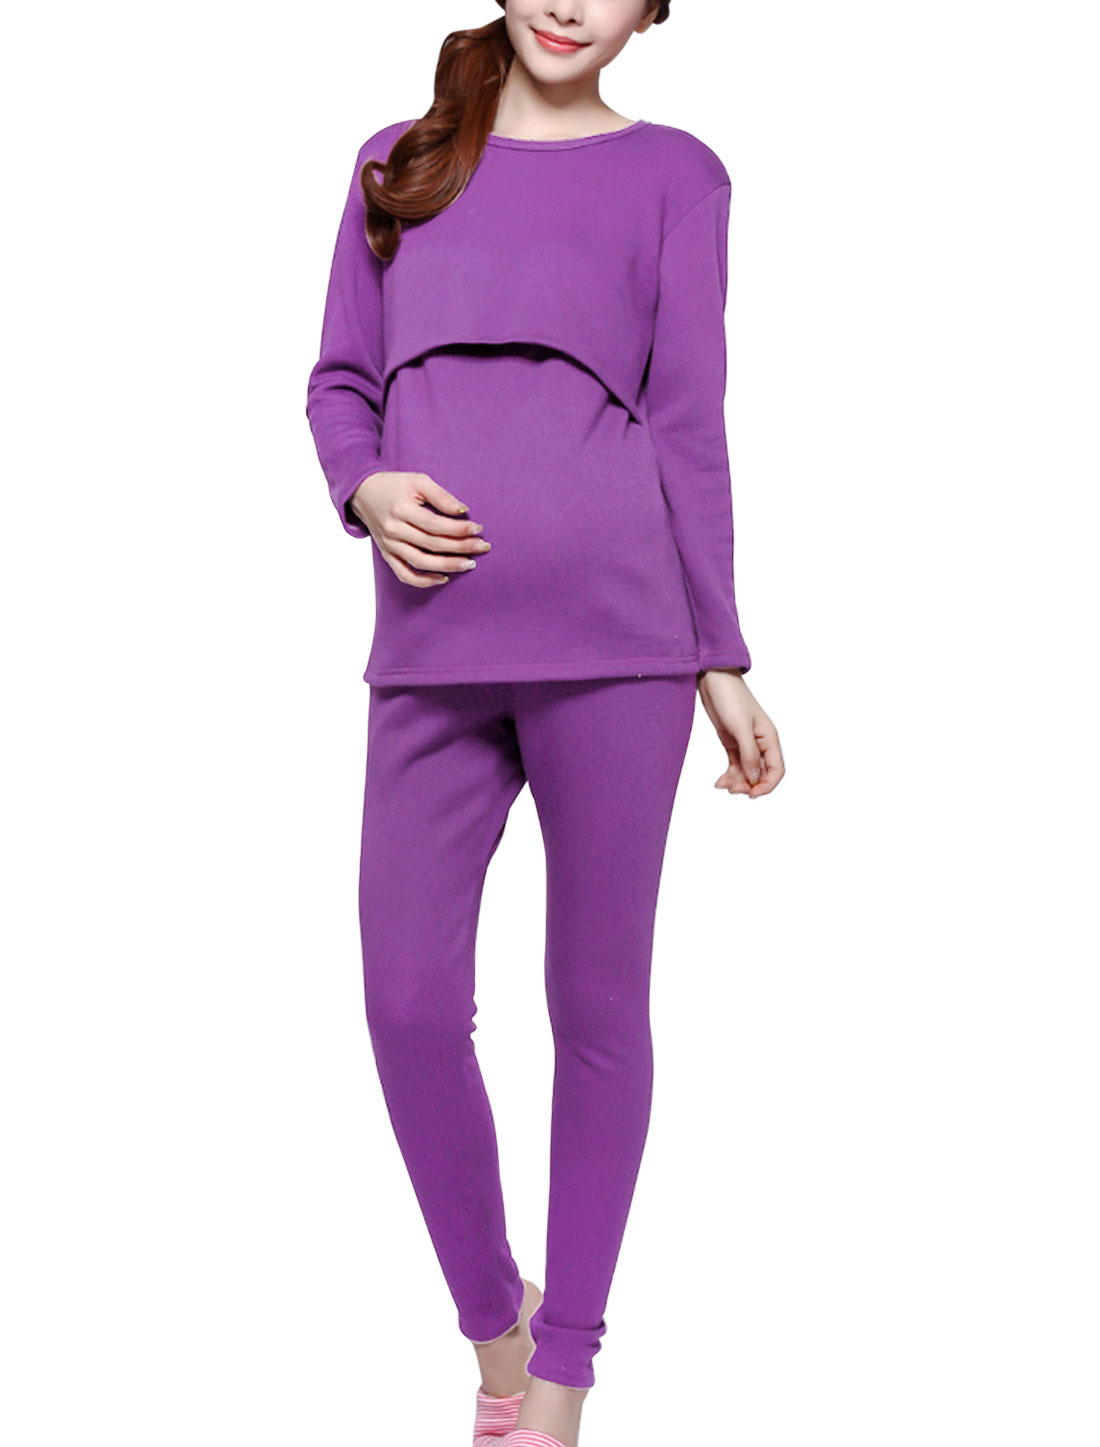 Maternity Slipover Adjustable Drawcord Waist Pajama Sleepwear Set Violet S